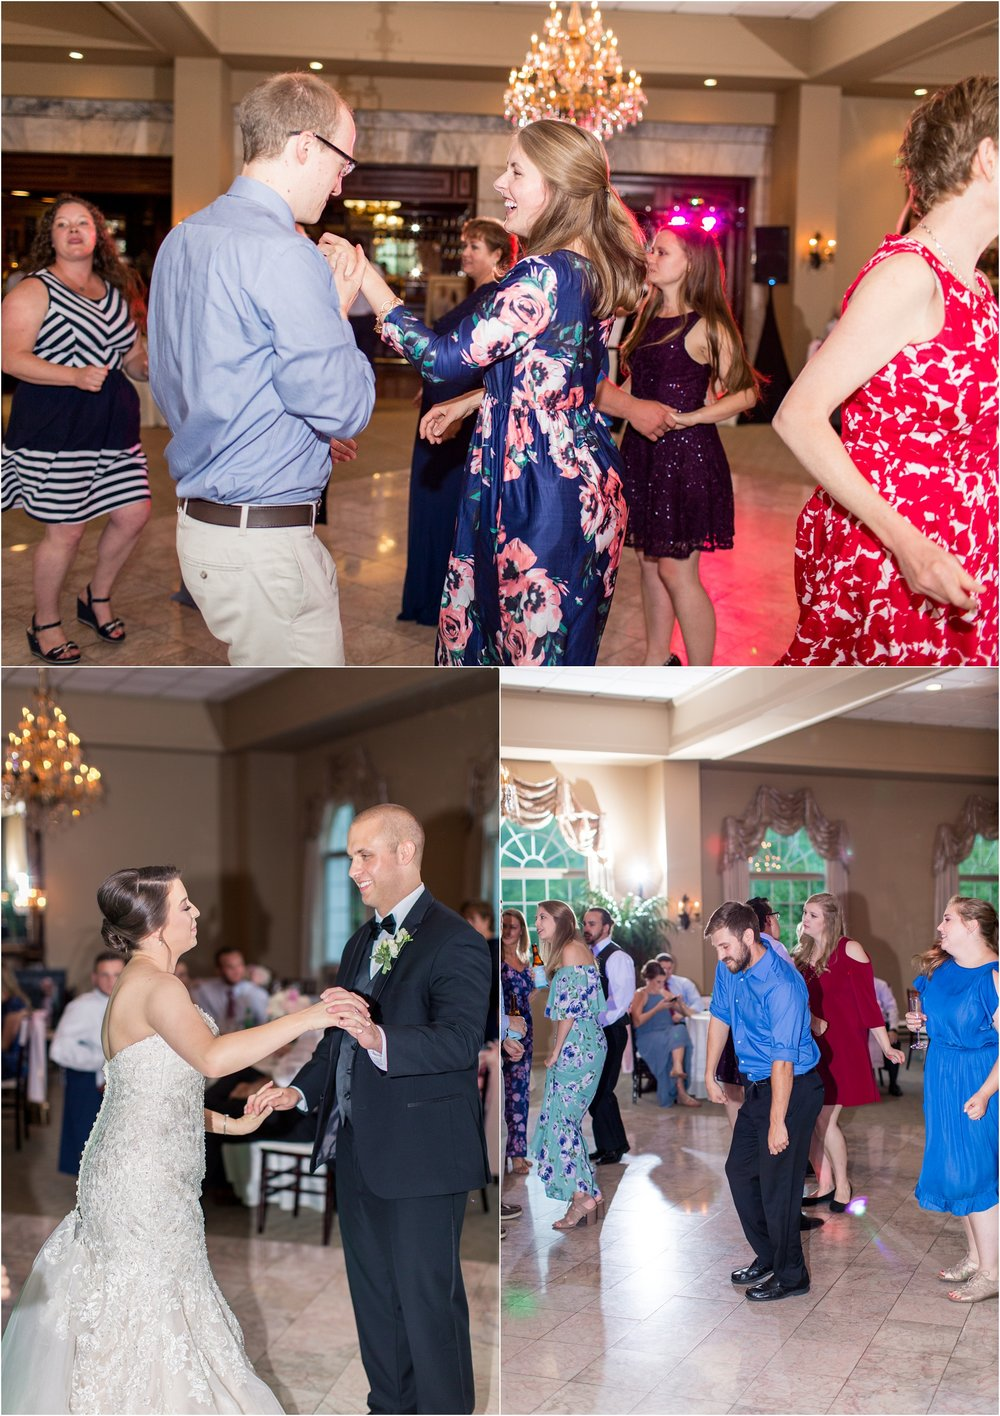 Savannah Eve Photography- Nutt Wedding- Blog-116.jpg